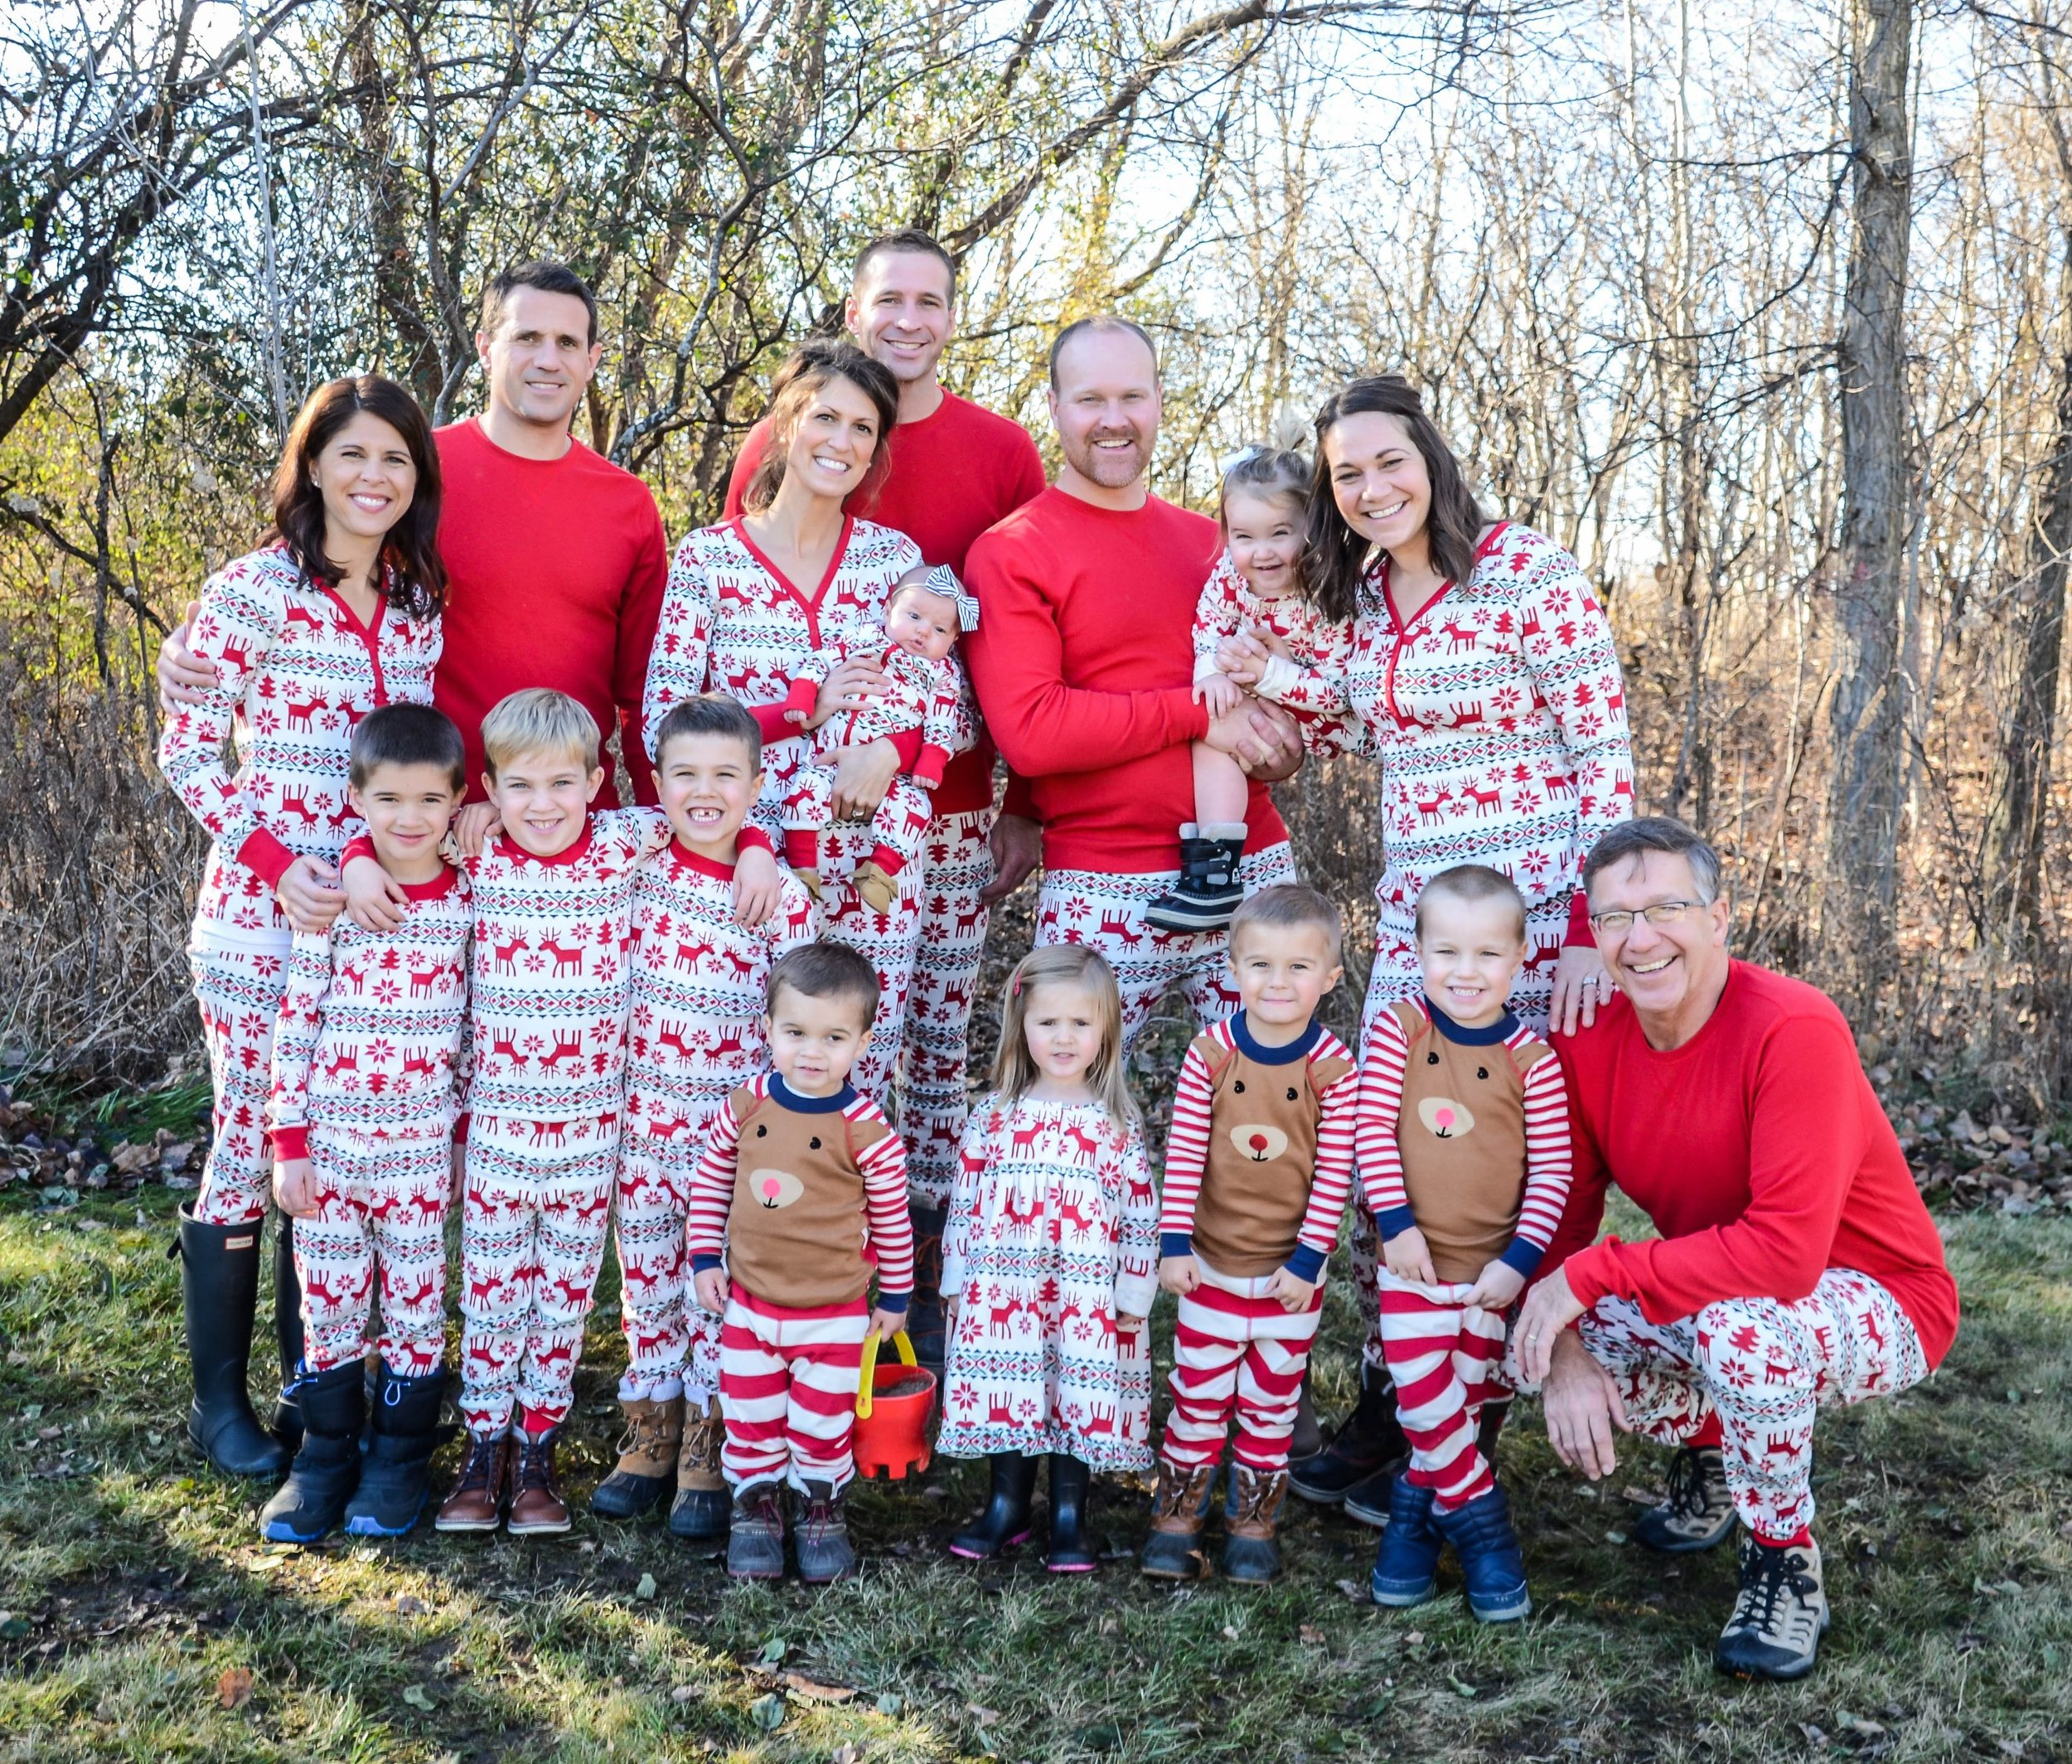 The whole family honoring Pam with Christmas pajamas the Christmas after she passed away.